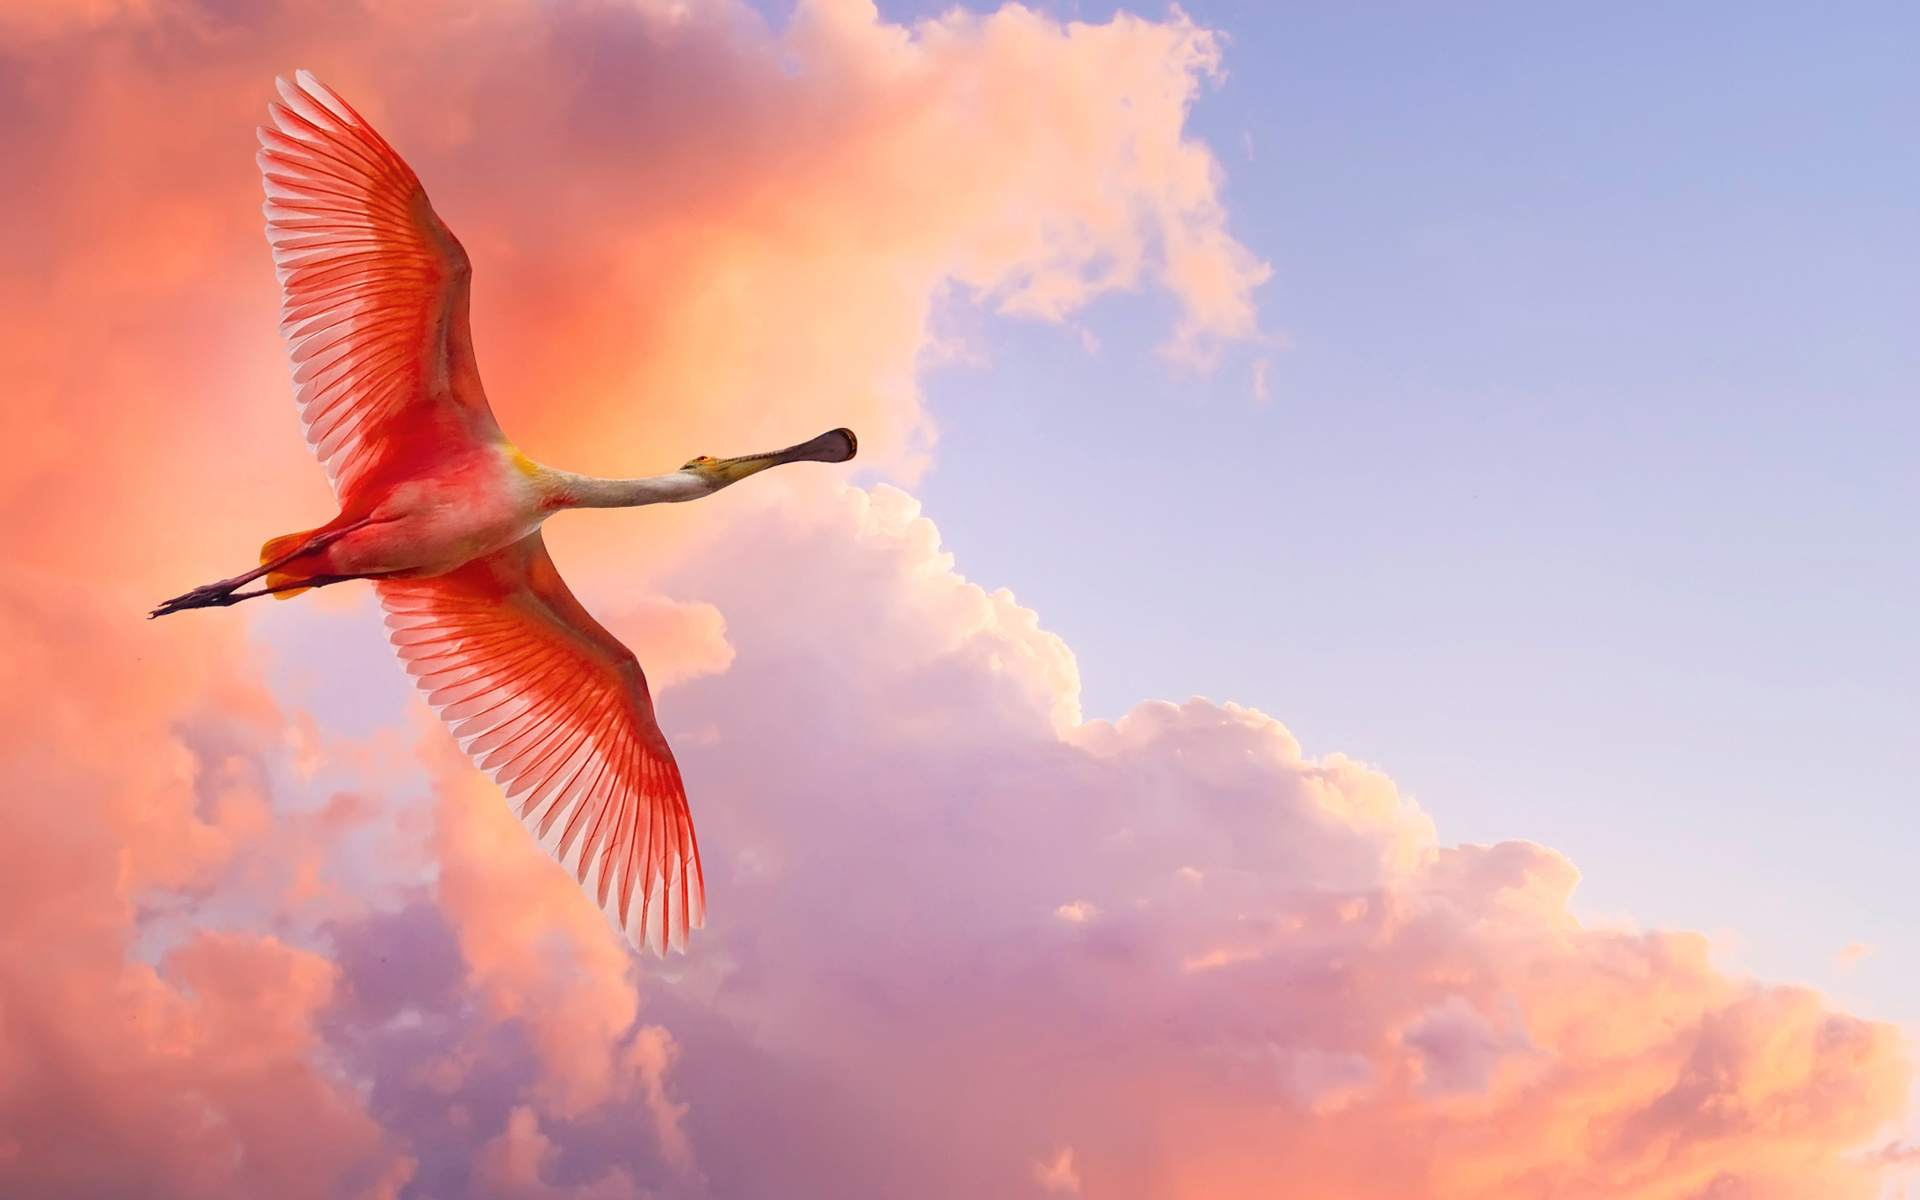 Download Nature Wallpaper wallpaper Pink Bird 1920x1200